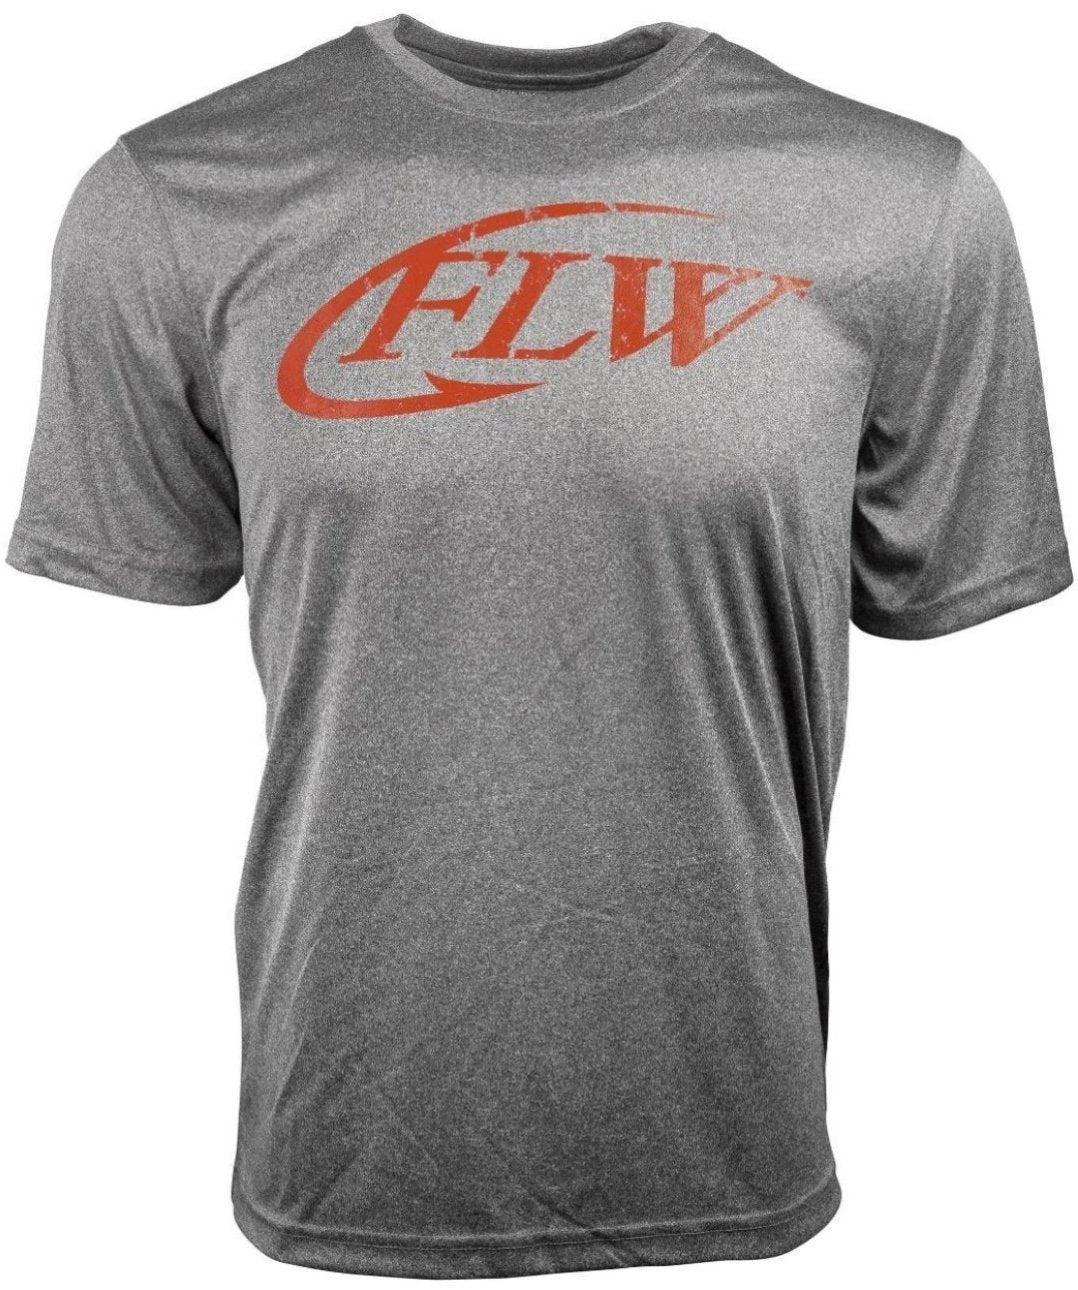 FLW Performance Crew Tee